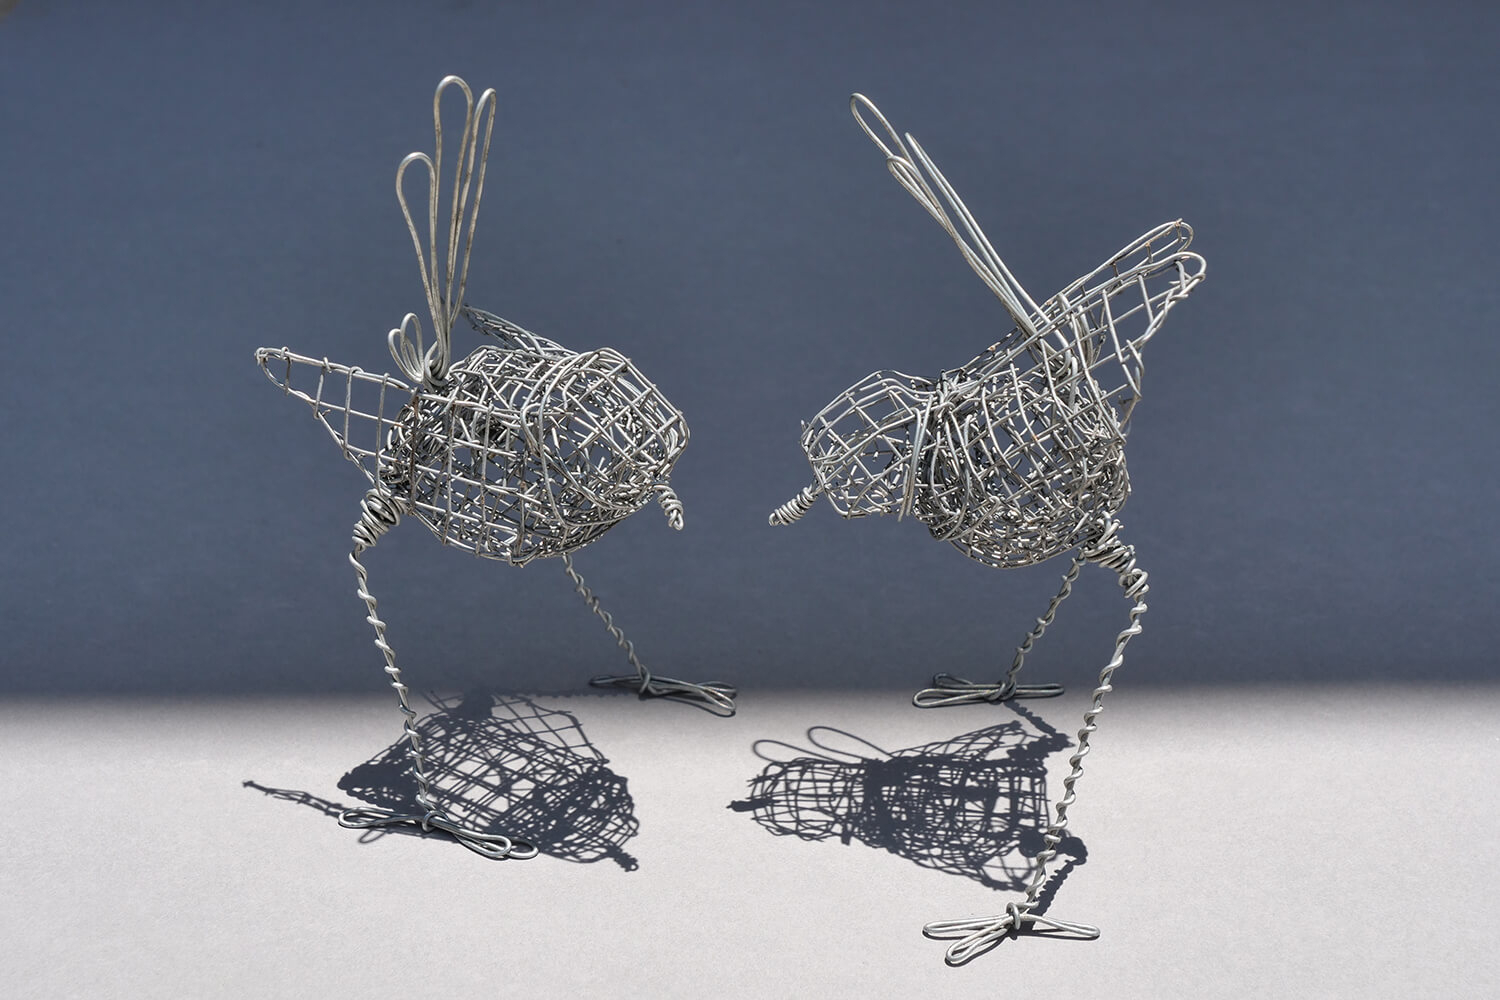 2 Wrens. 2 wire handmade wrens each approximately 13 cm in height x 7 cm wide.